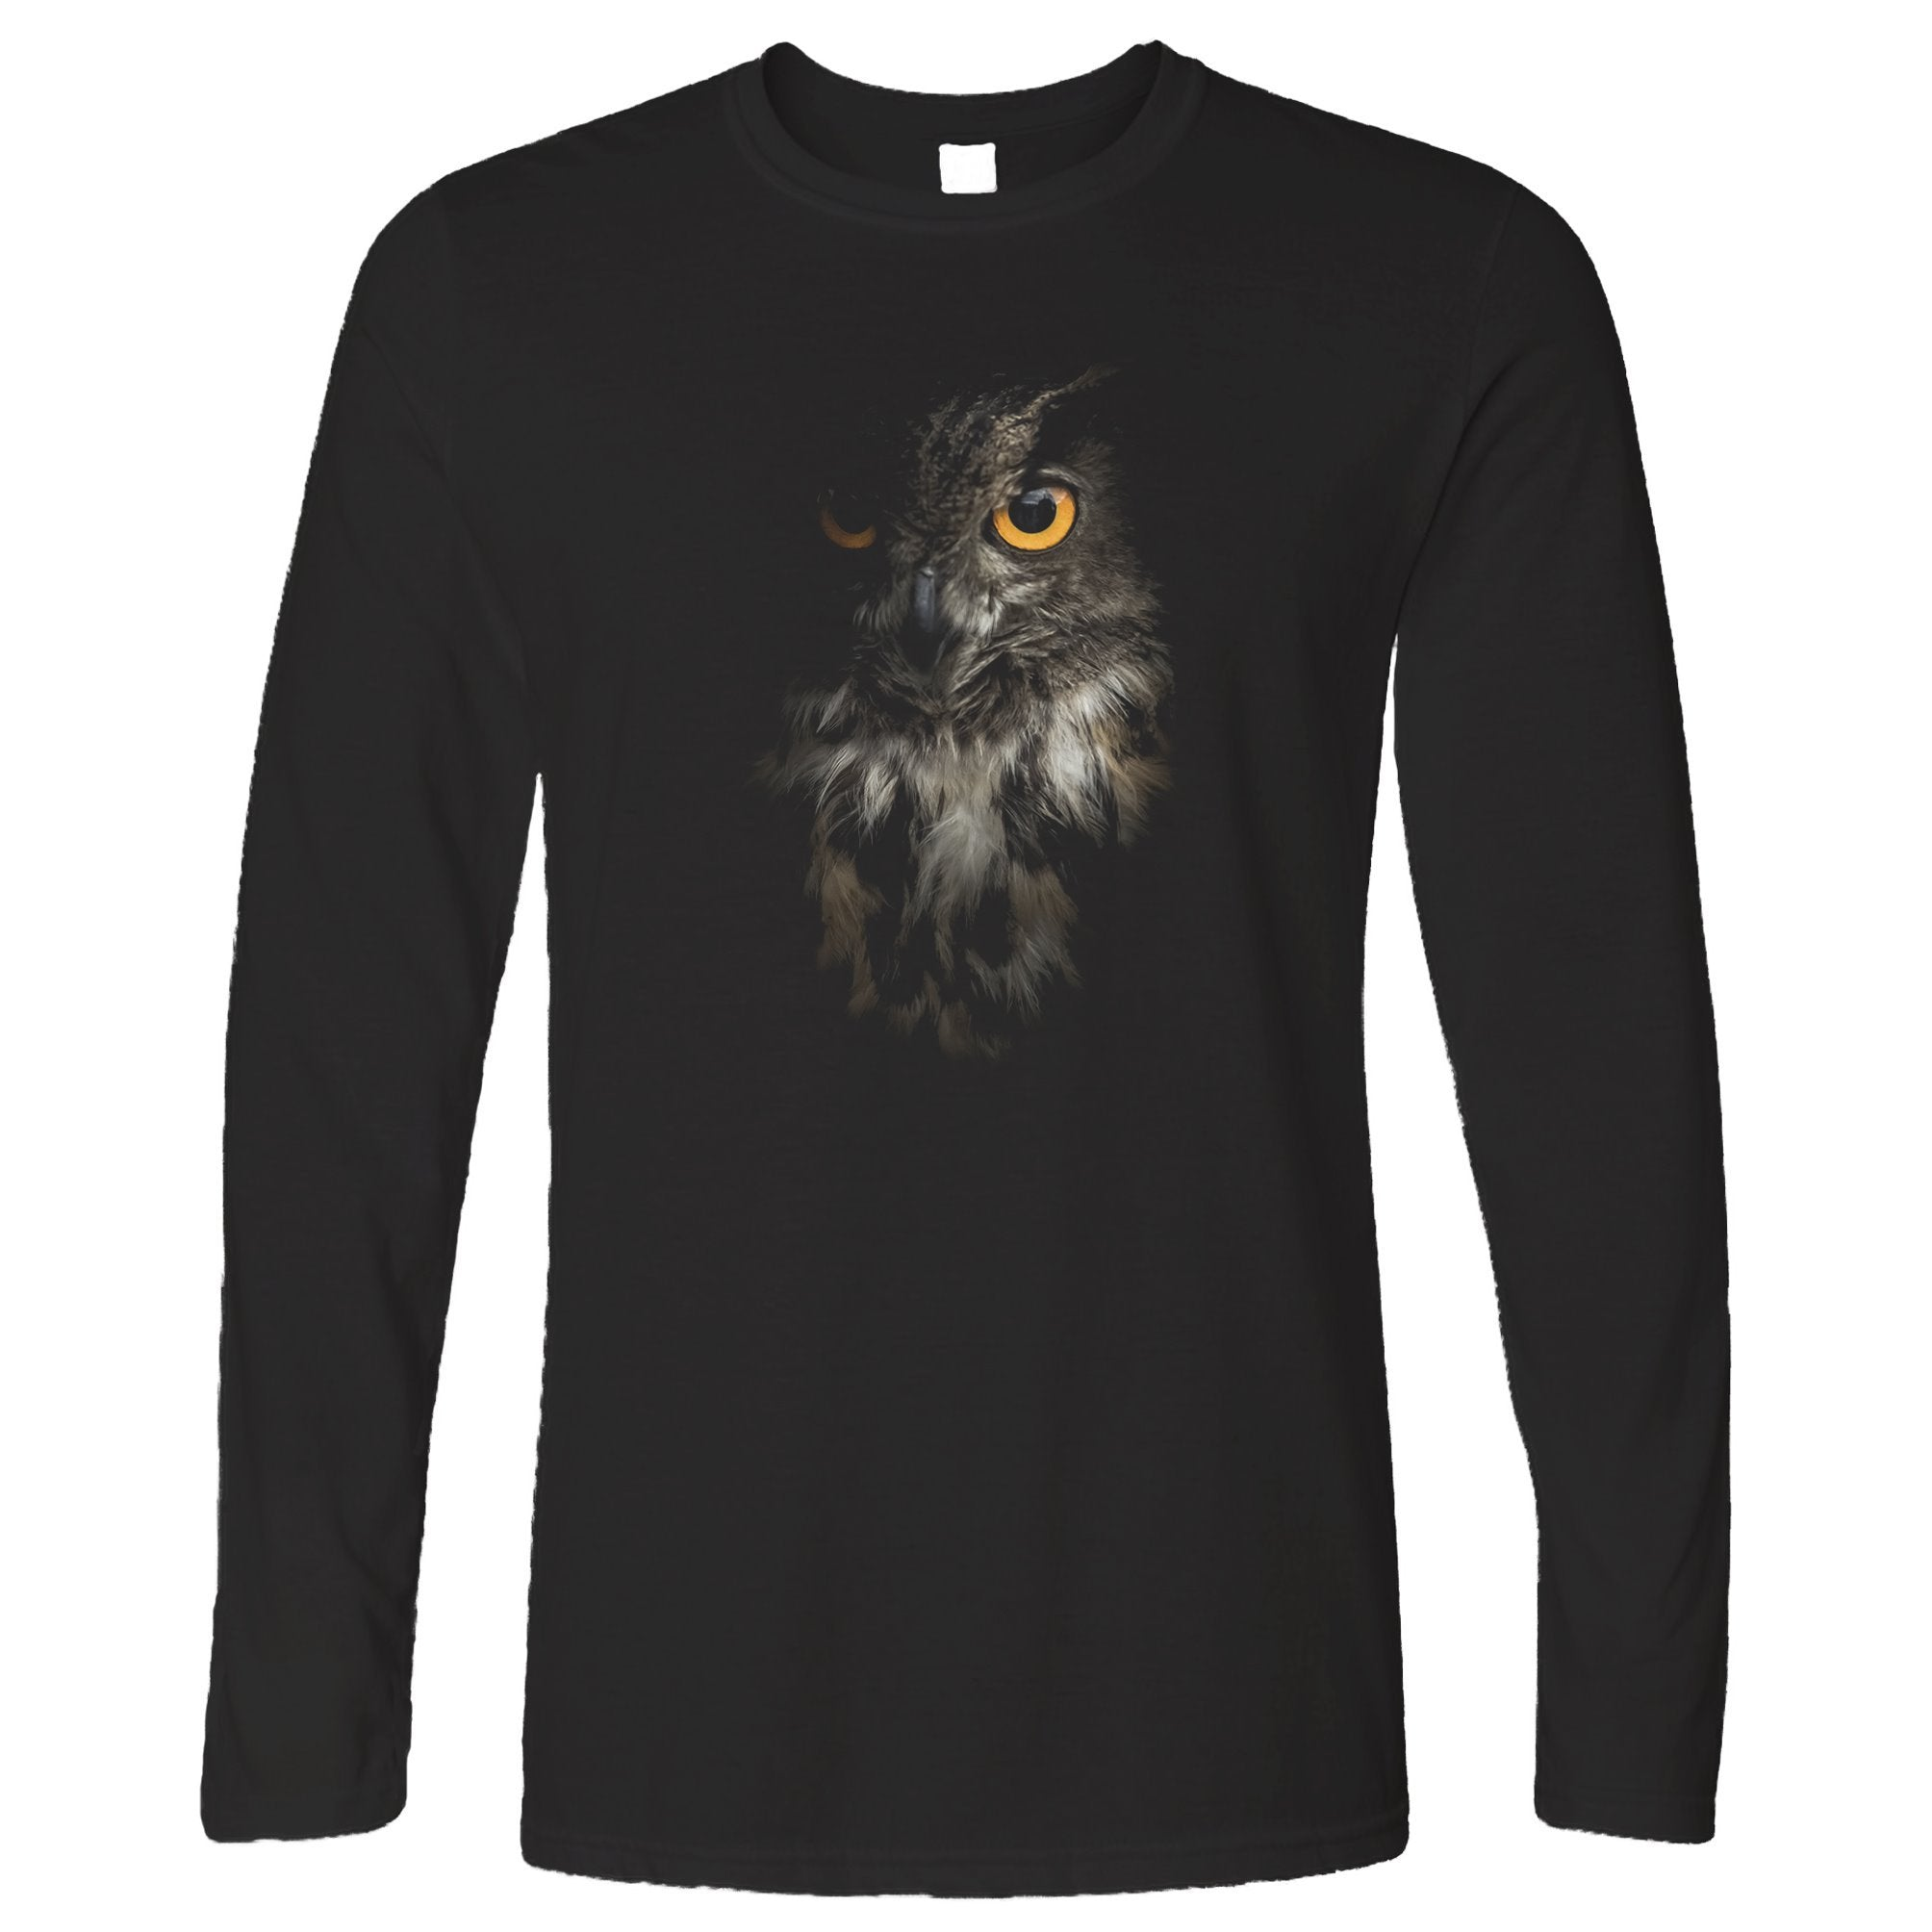 Owl Face Long Sleeve Nocturnal Bird Of Prey T-Shirt